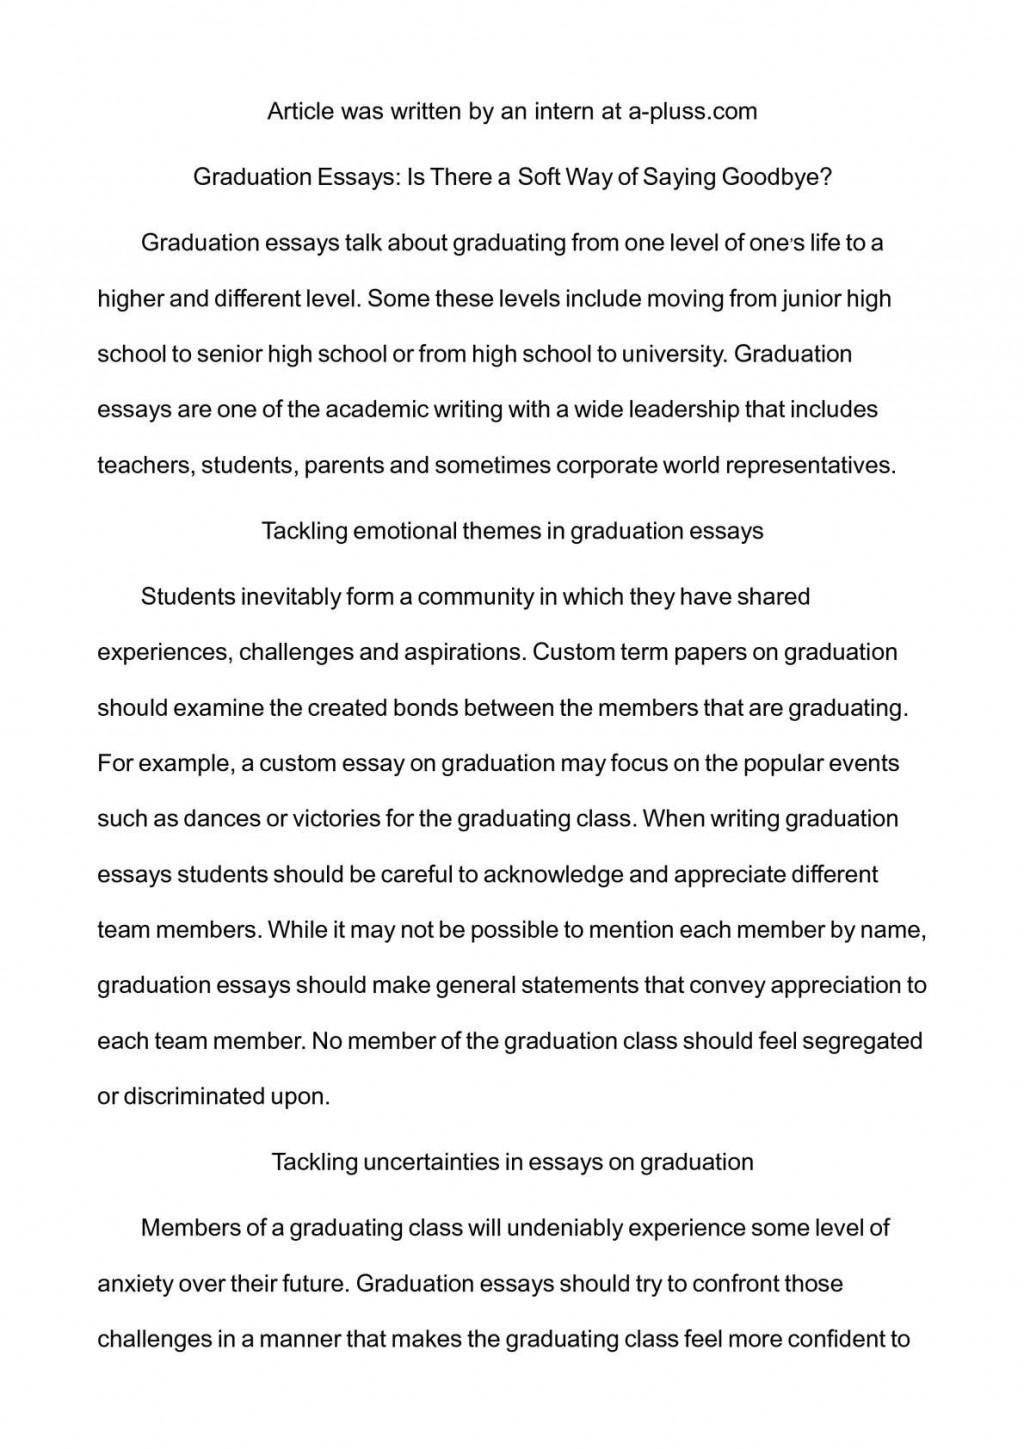 004 Essay Example P1 Formidable Truth Nothing But The Topics Alone Triumphs In Tamil Conclusion Large